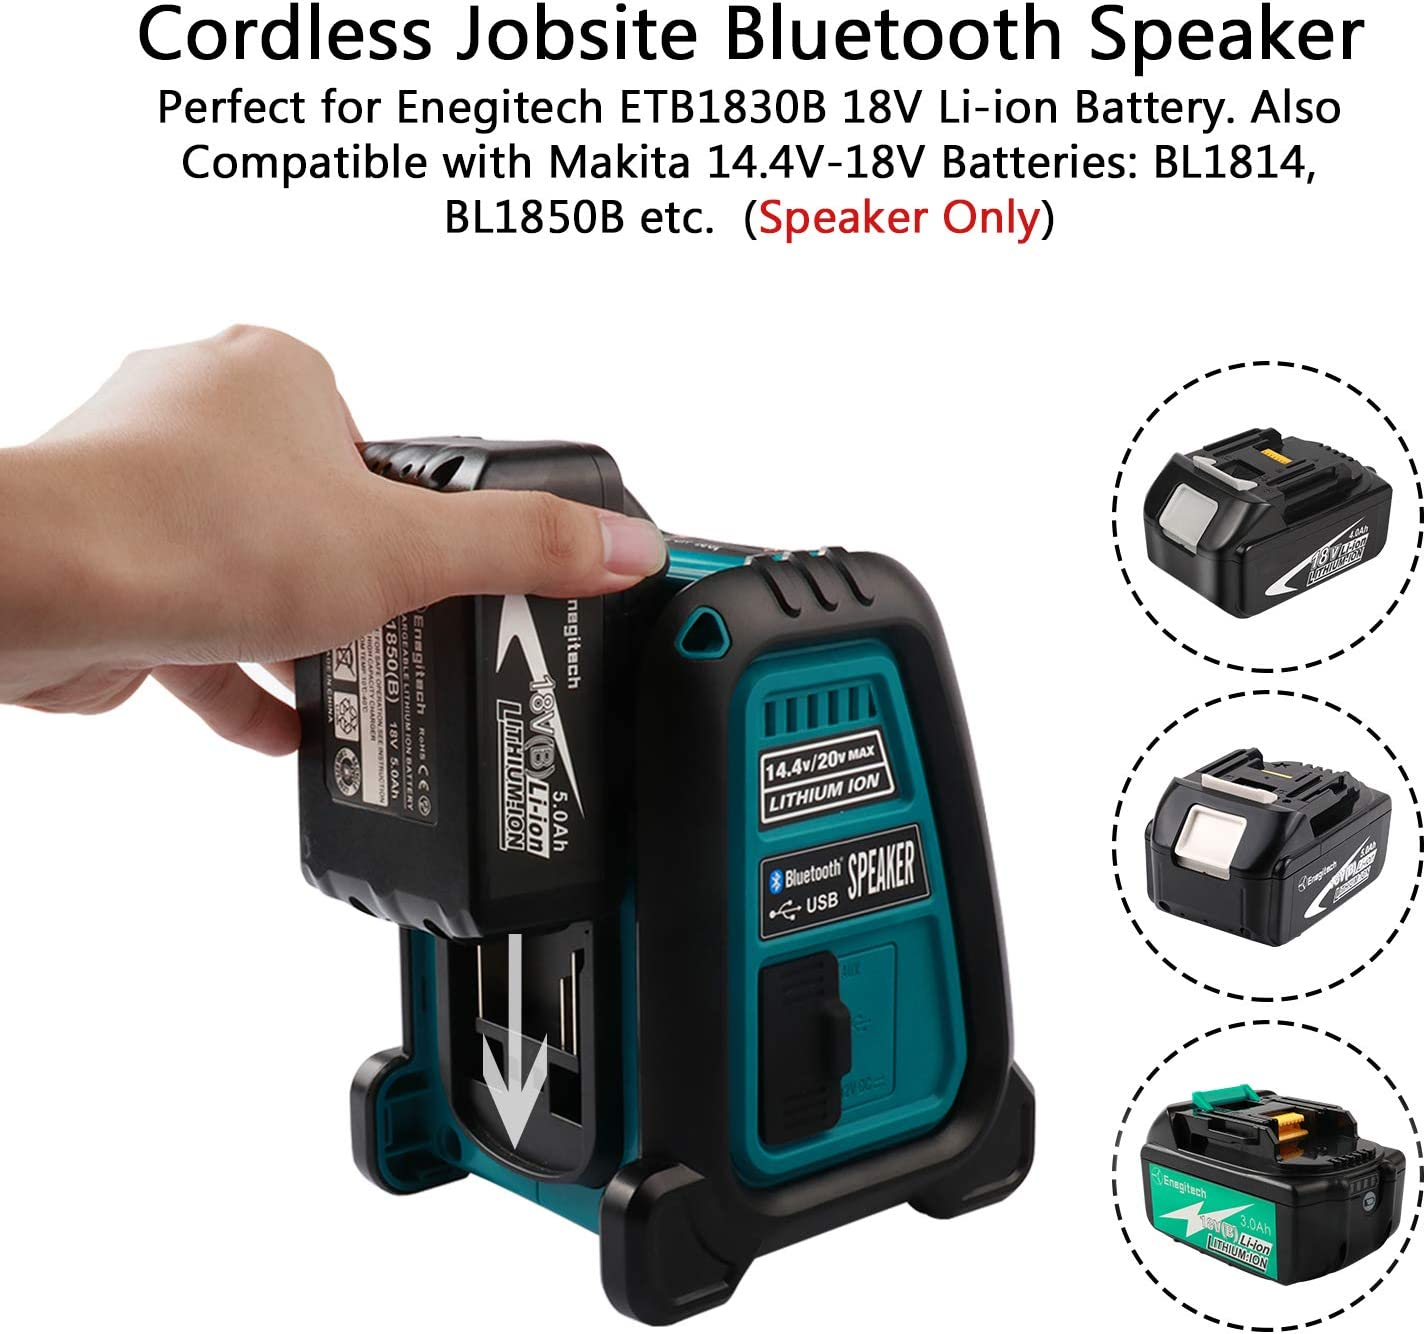 Jobsite Bluetooth Speaker 14.4V-20V Li-ion Job Site Speaker with Bluetooth Wireless Outdoor//Indoor Speaker for Construction Garage Industrial Battery Not Included